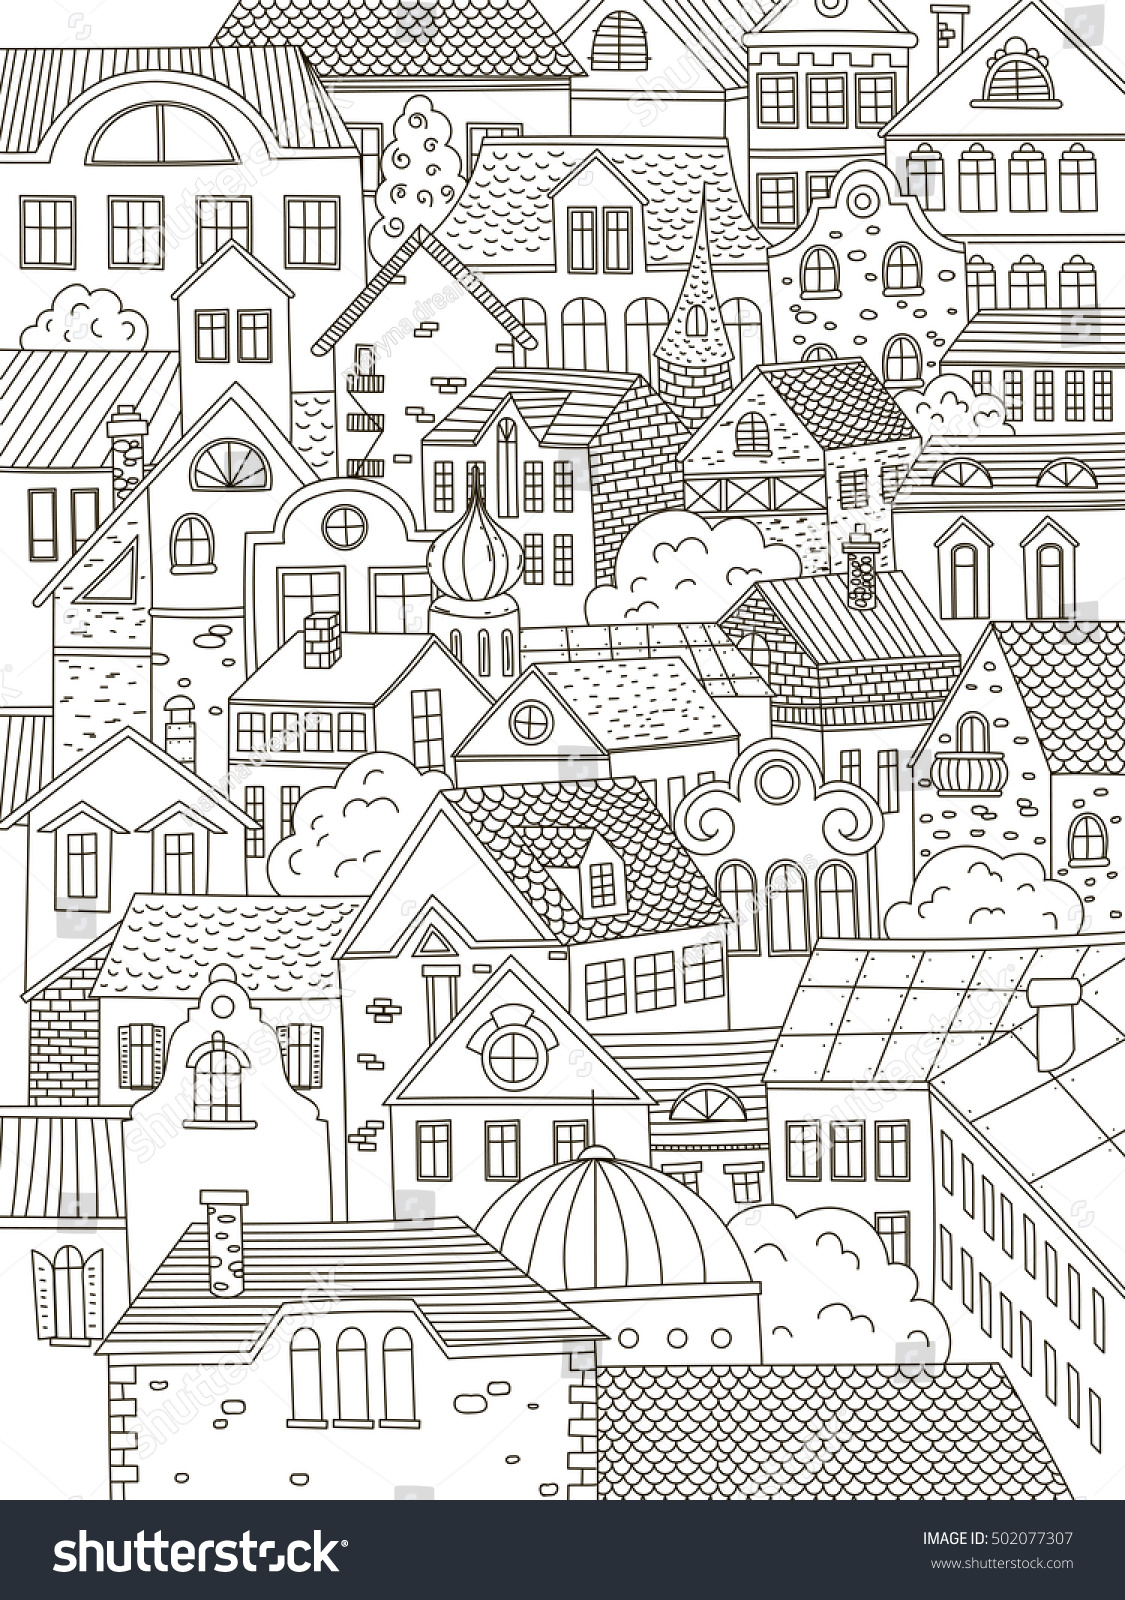 Town coloring book winter